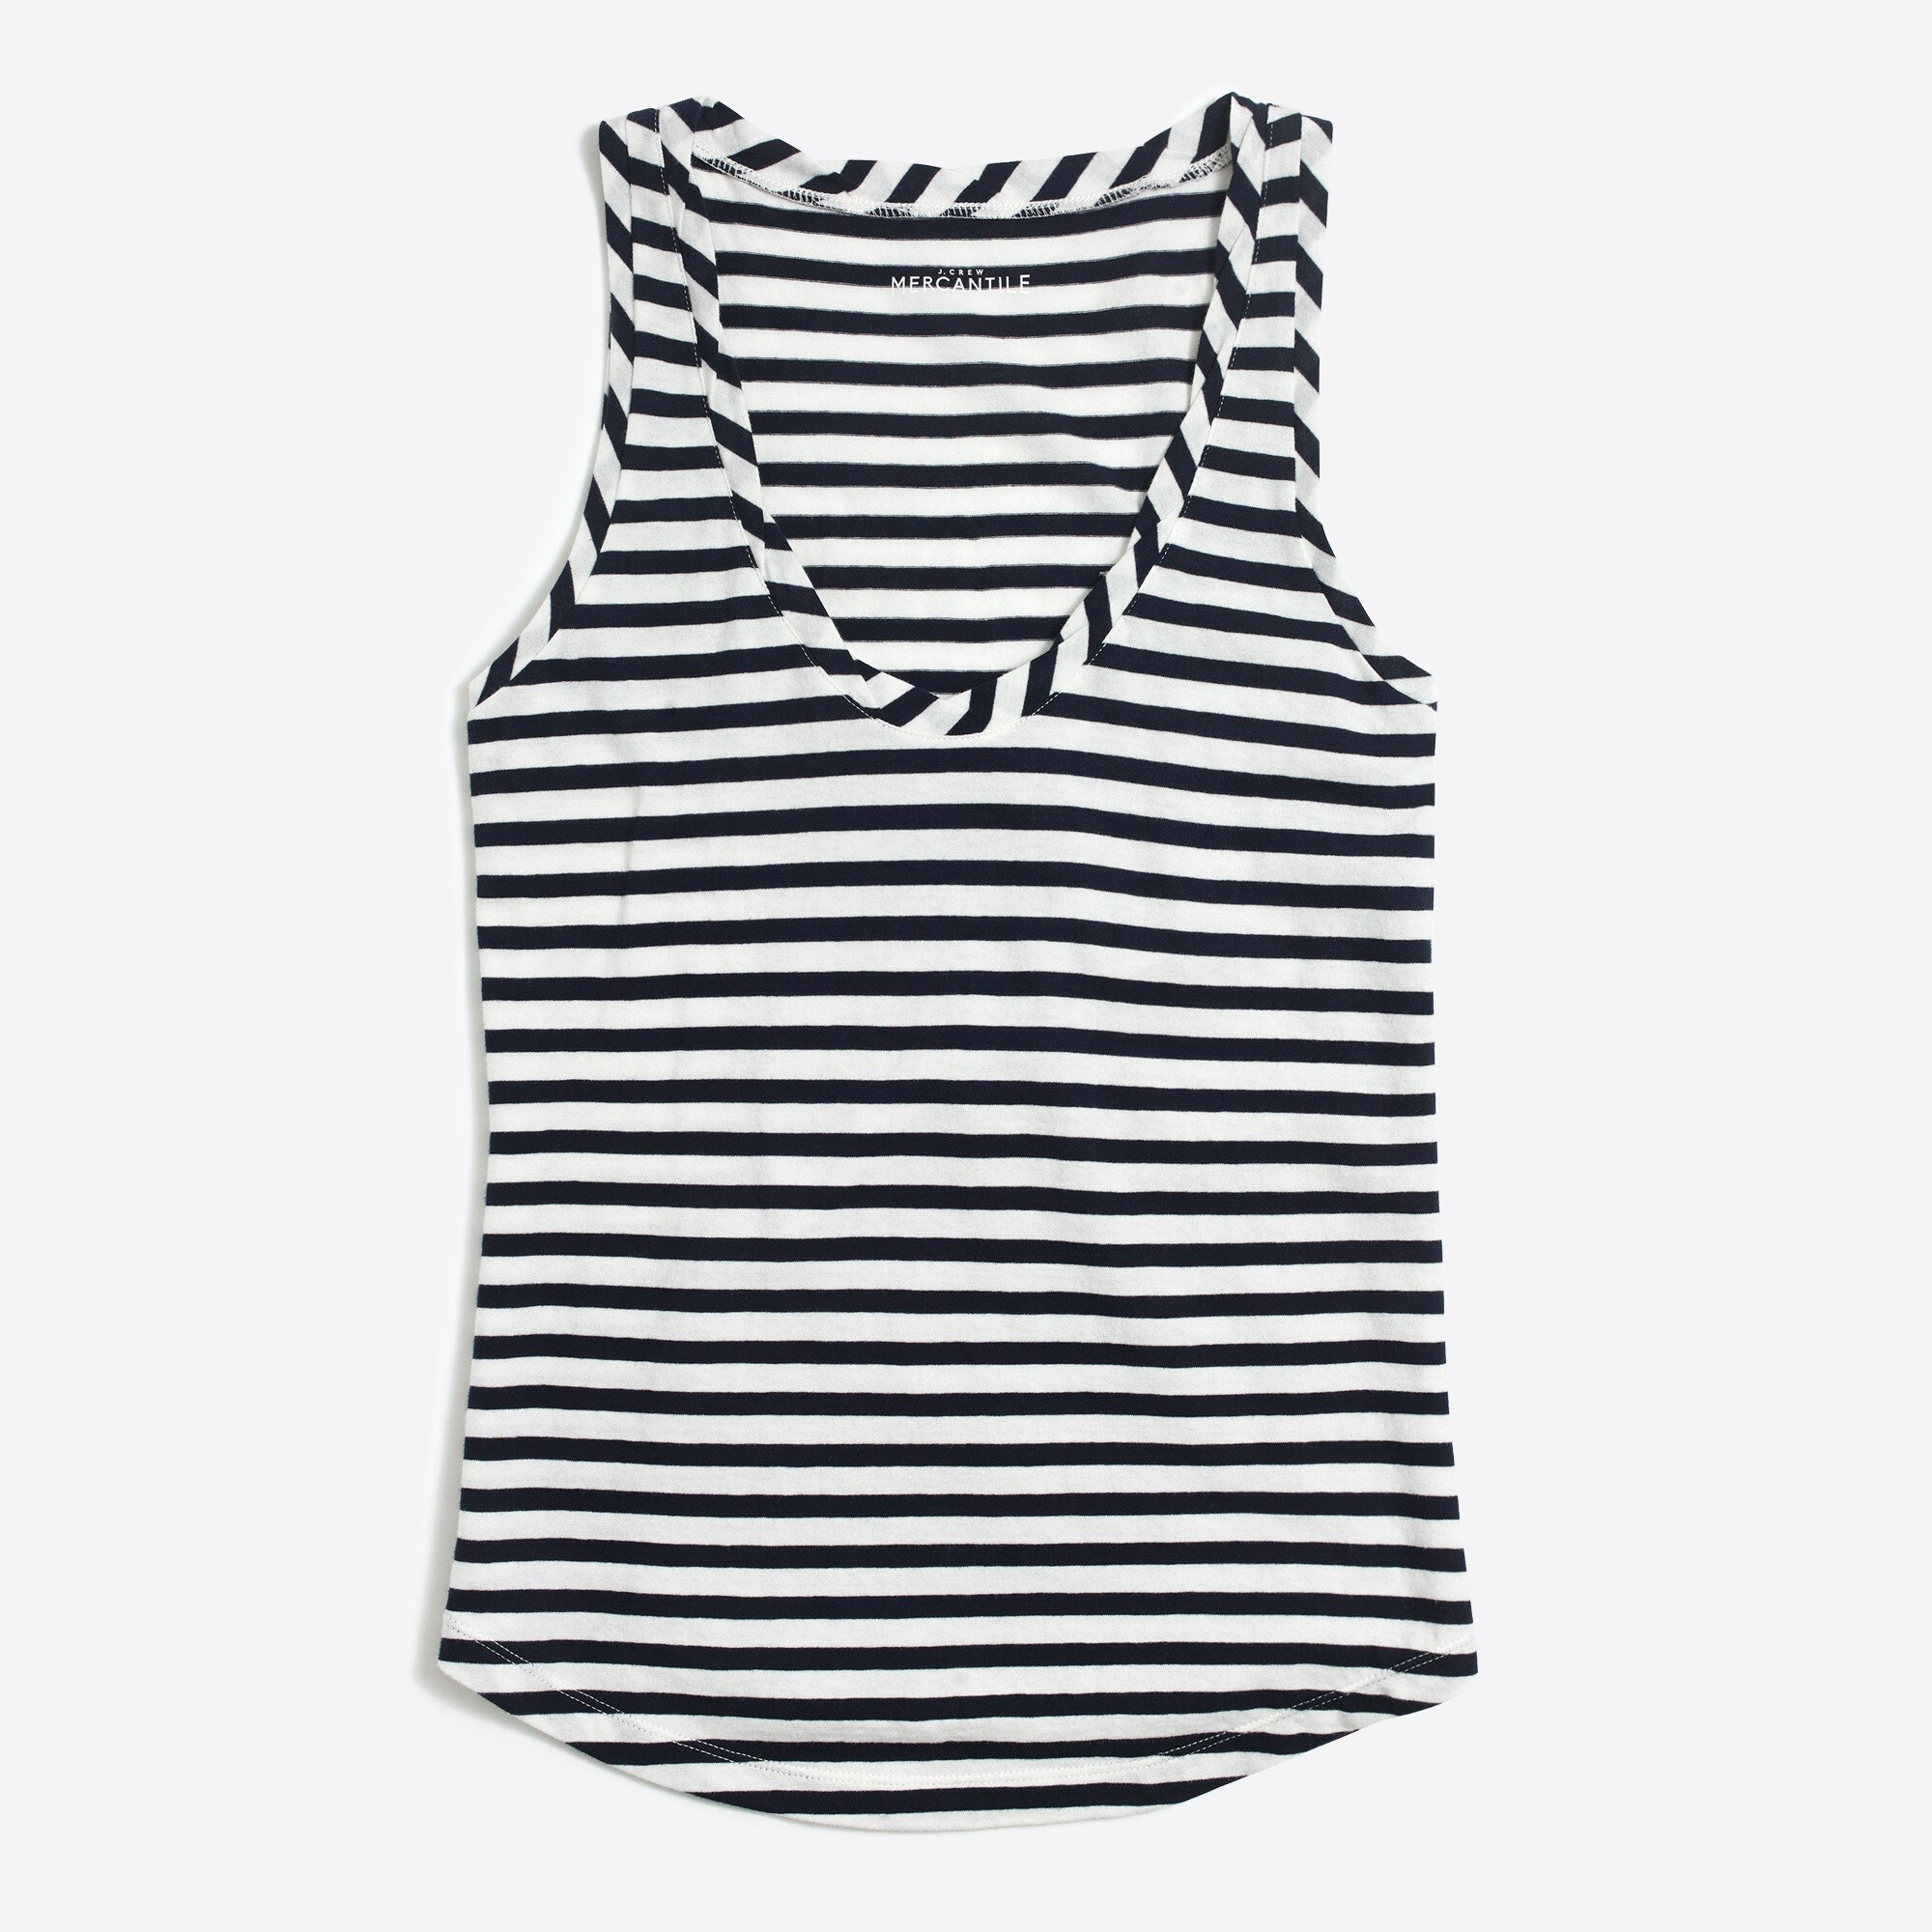 J.Crew Mercantile Striped Tissue tank top factorywomen new arrivals c